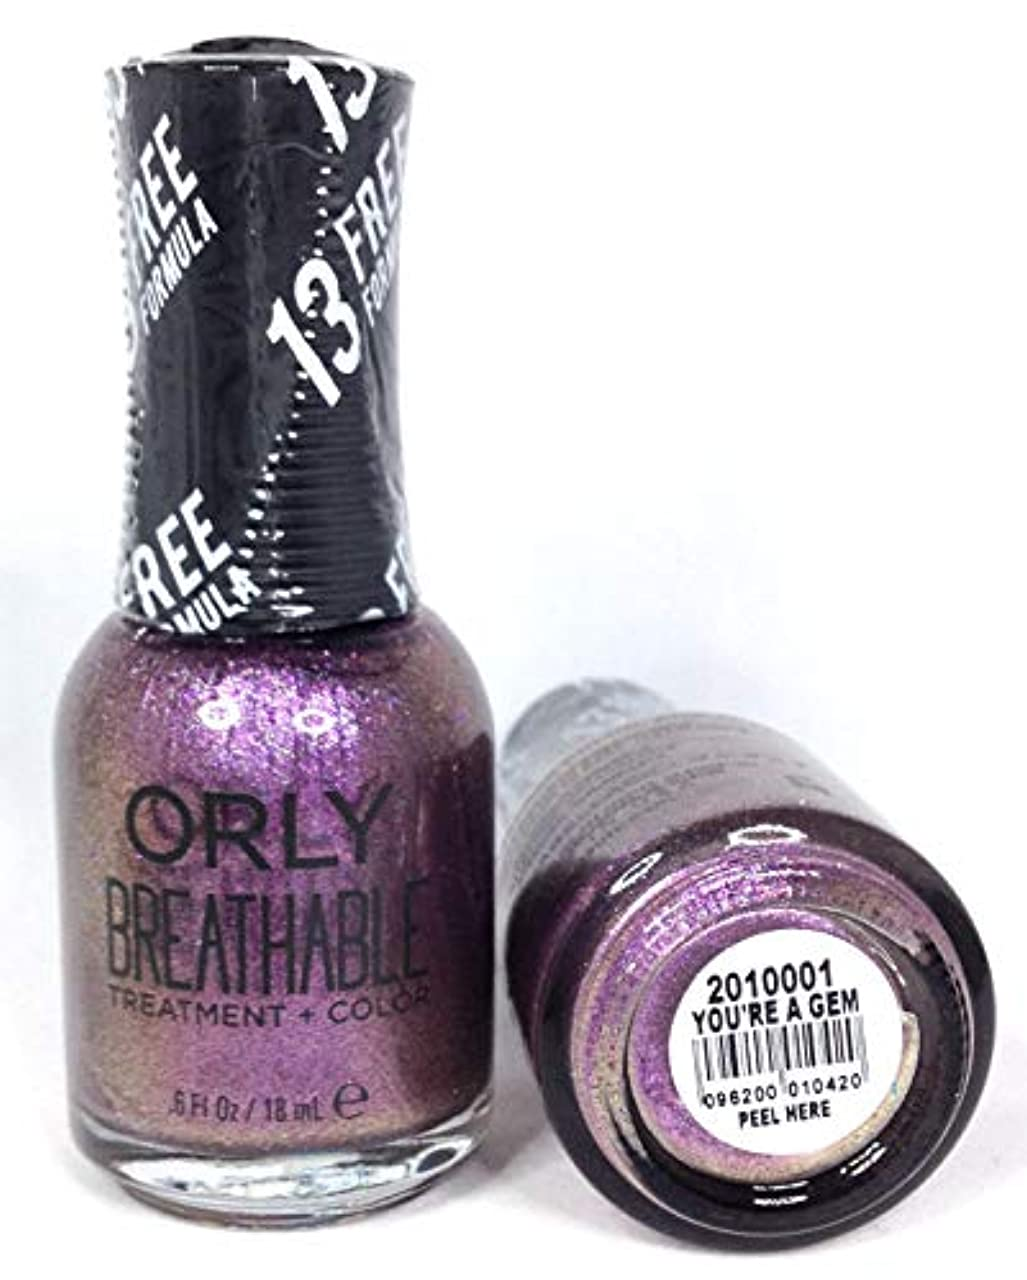 アプローチ担保称賛ORLY Breathable Lacquer - Treatment+Color - You're A Gem - 18 mL / 0.6 oz